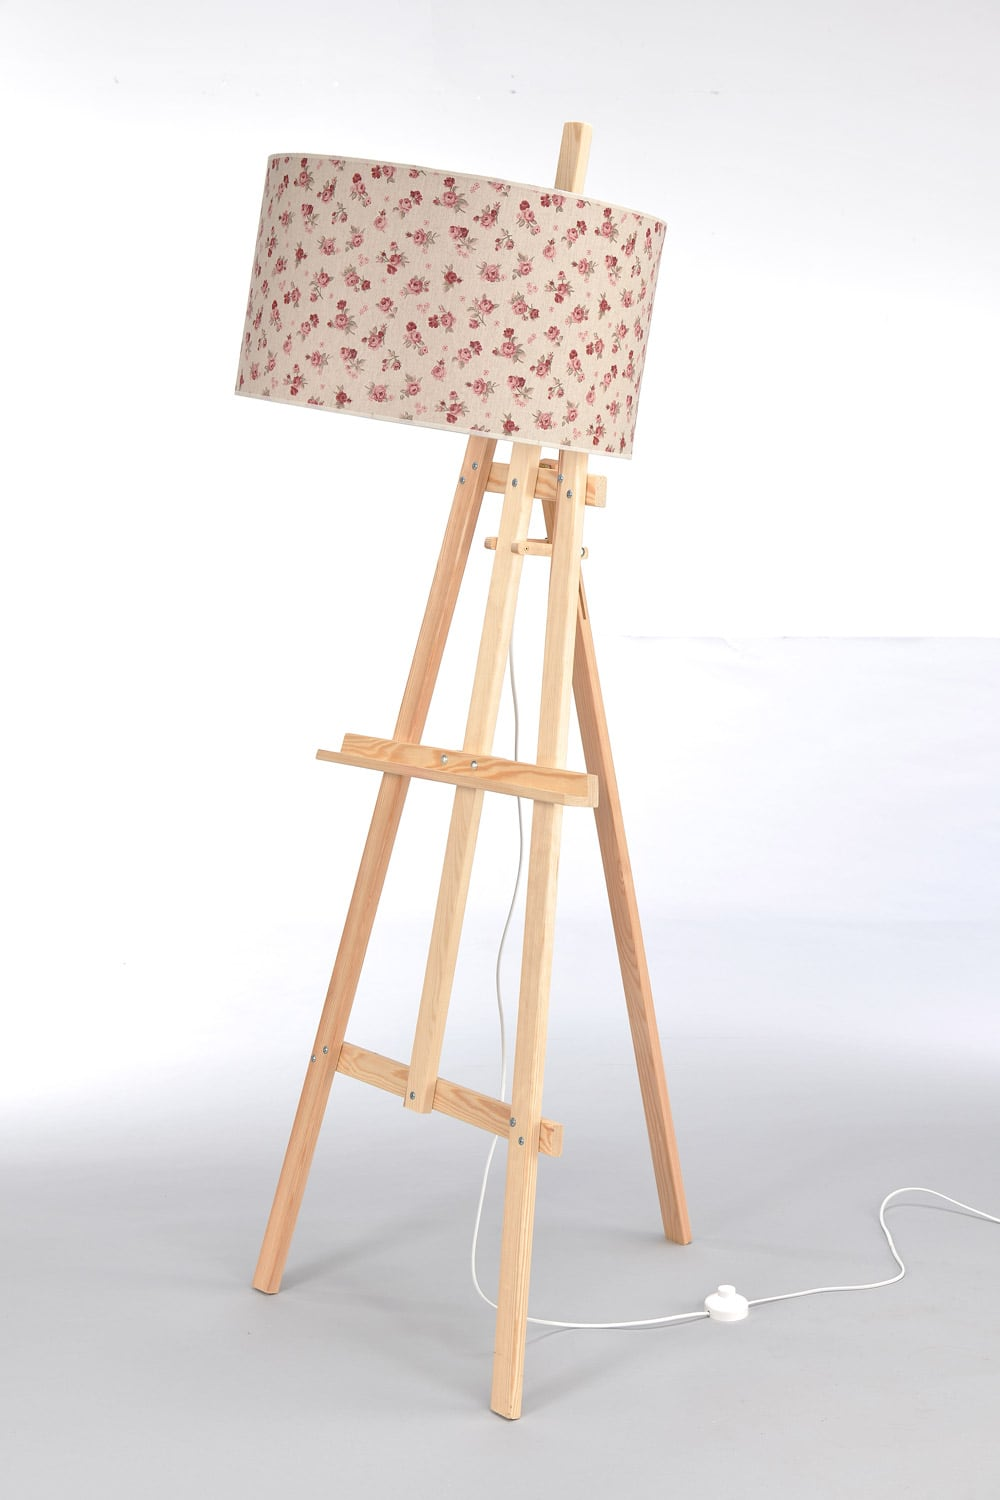 Standing Wood Lamp easel No. 2475